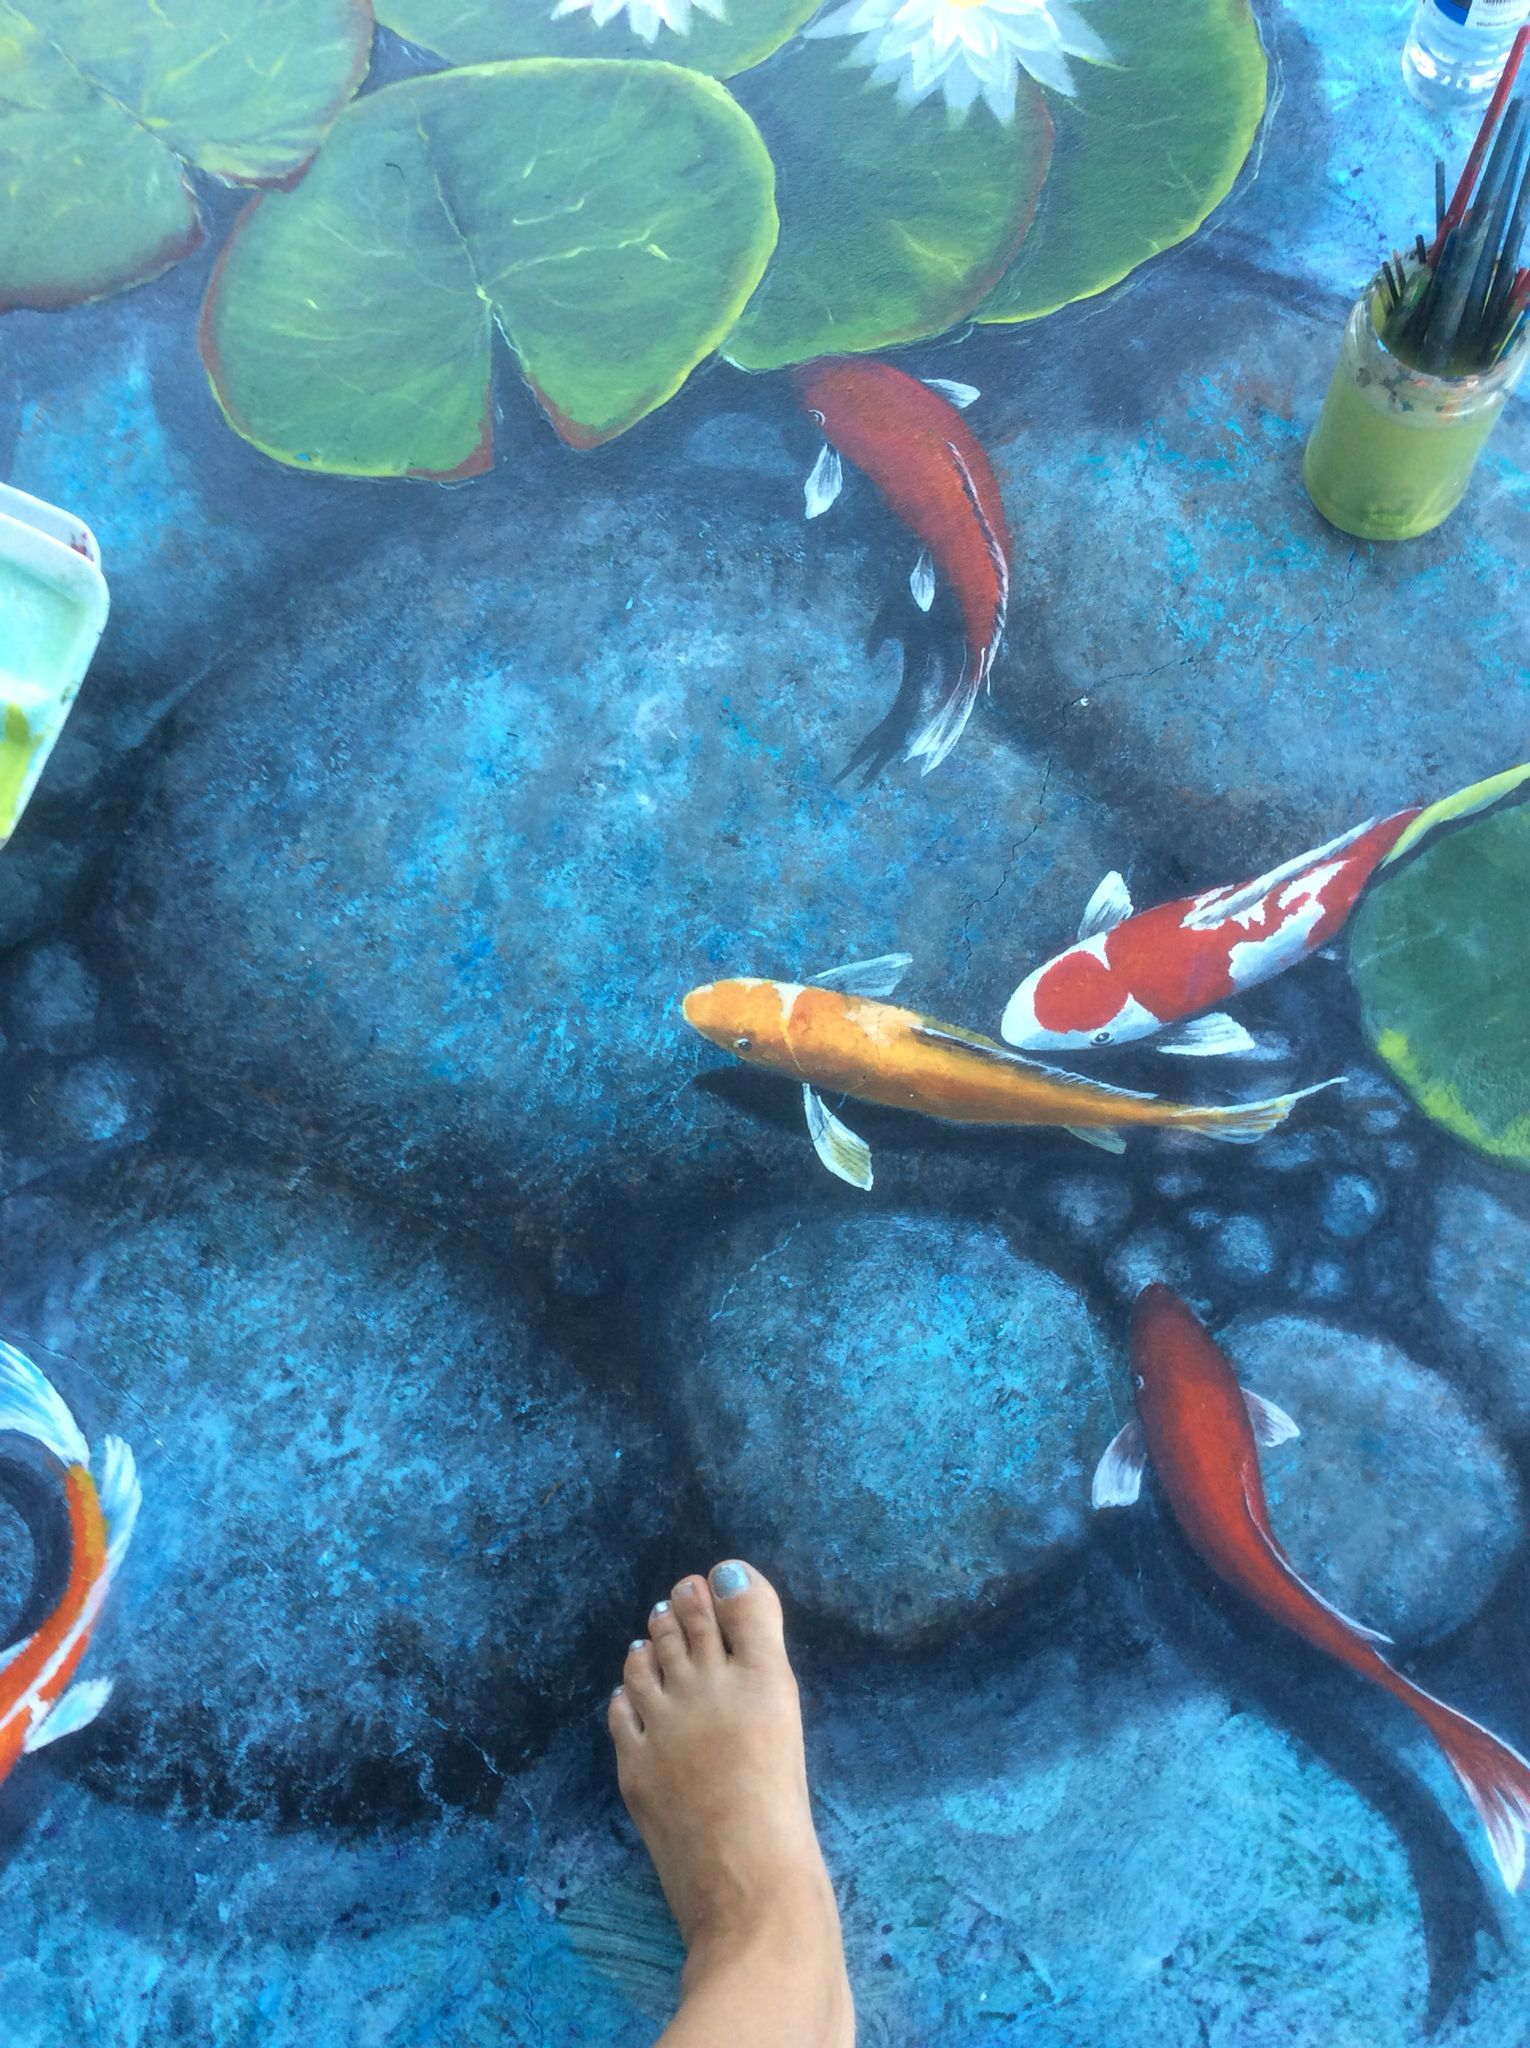 Trompe l'oeil koi fish pond on my lanai. Floor painting. Artwork and design by Louise Moorman.